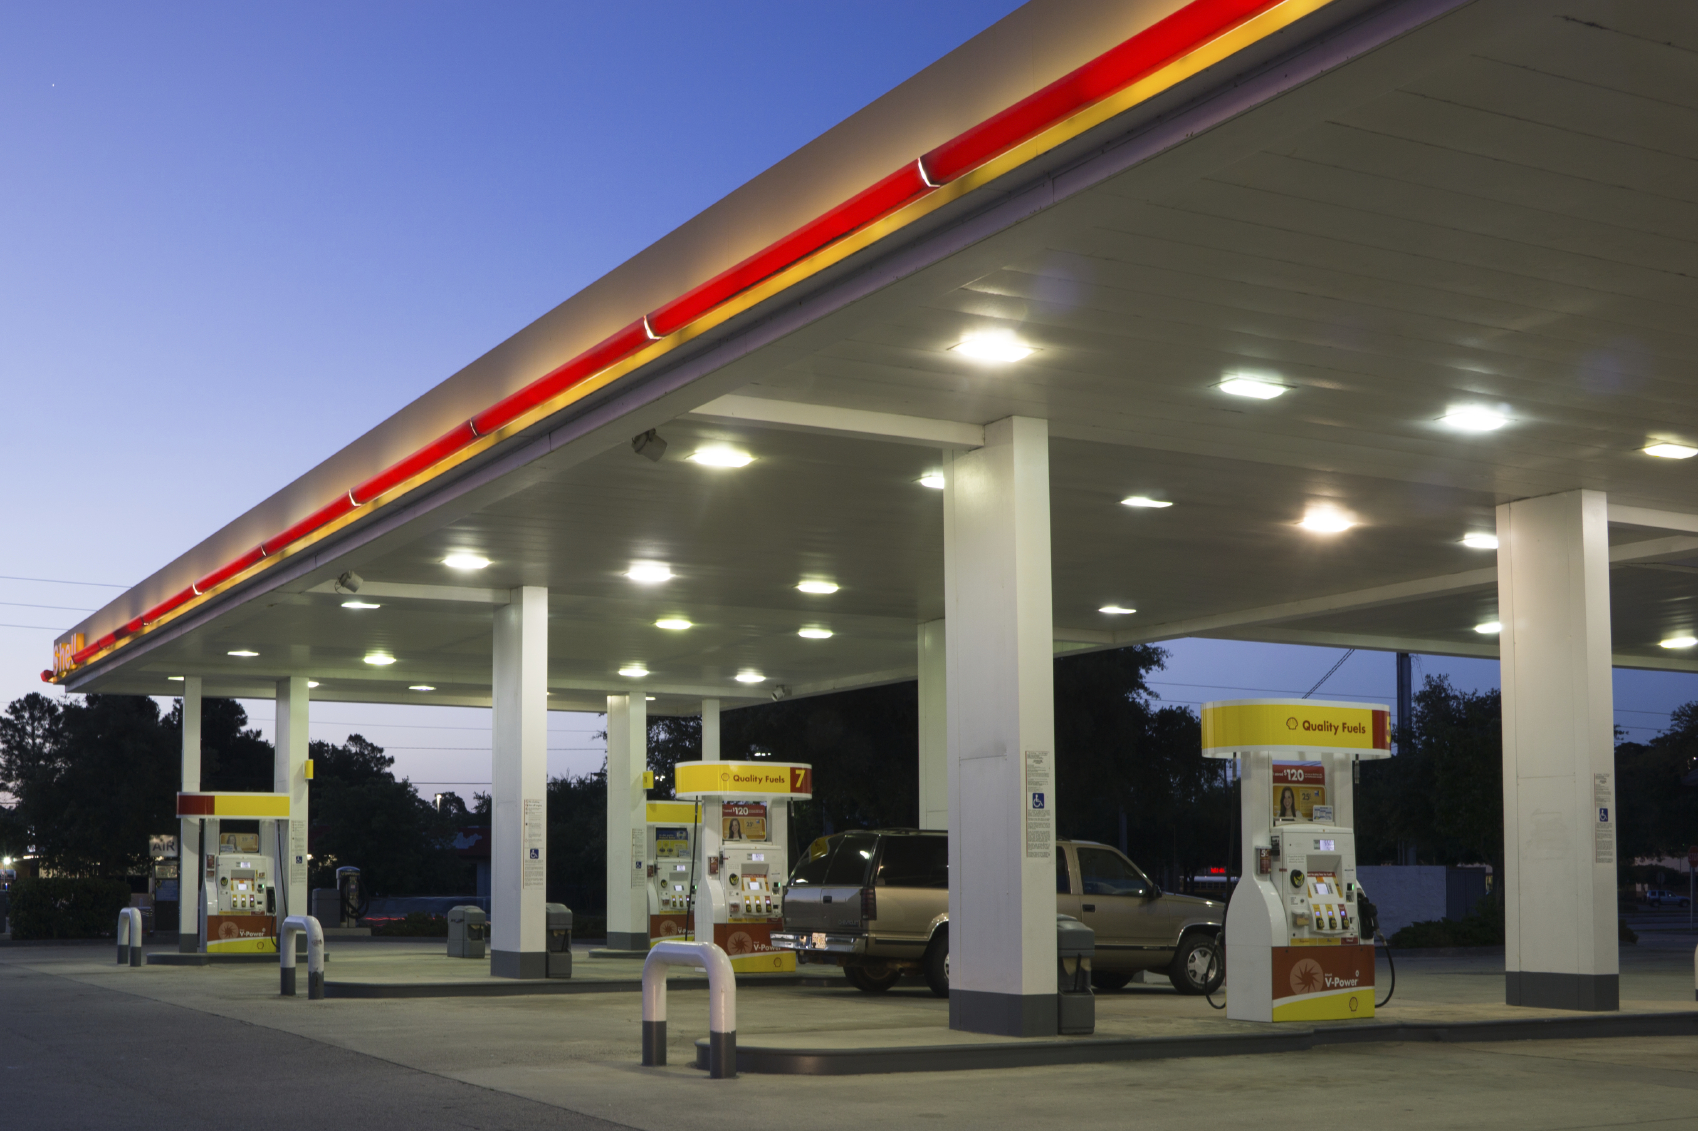 LED Lighting for Petrol Stations - Big Green Switch